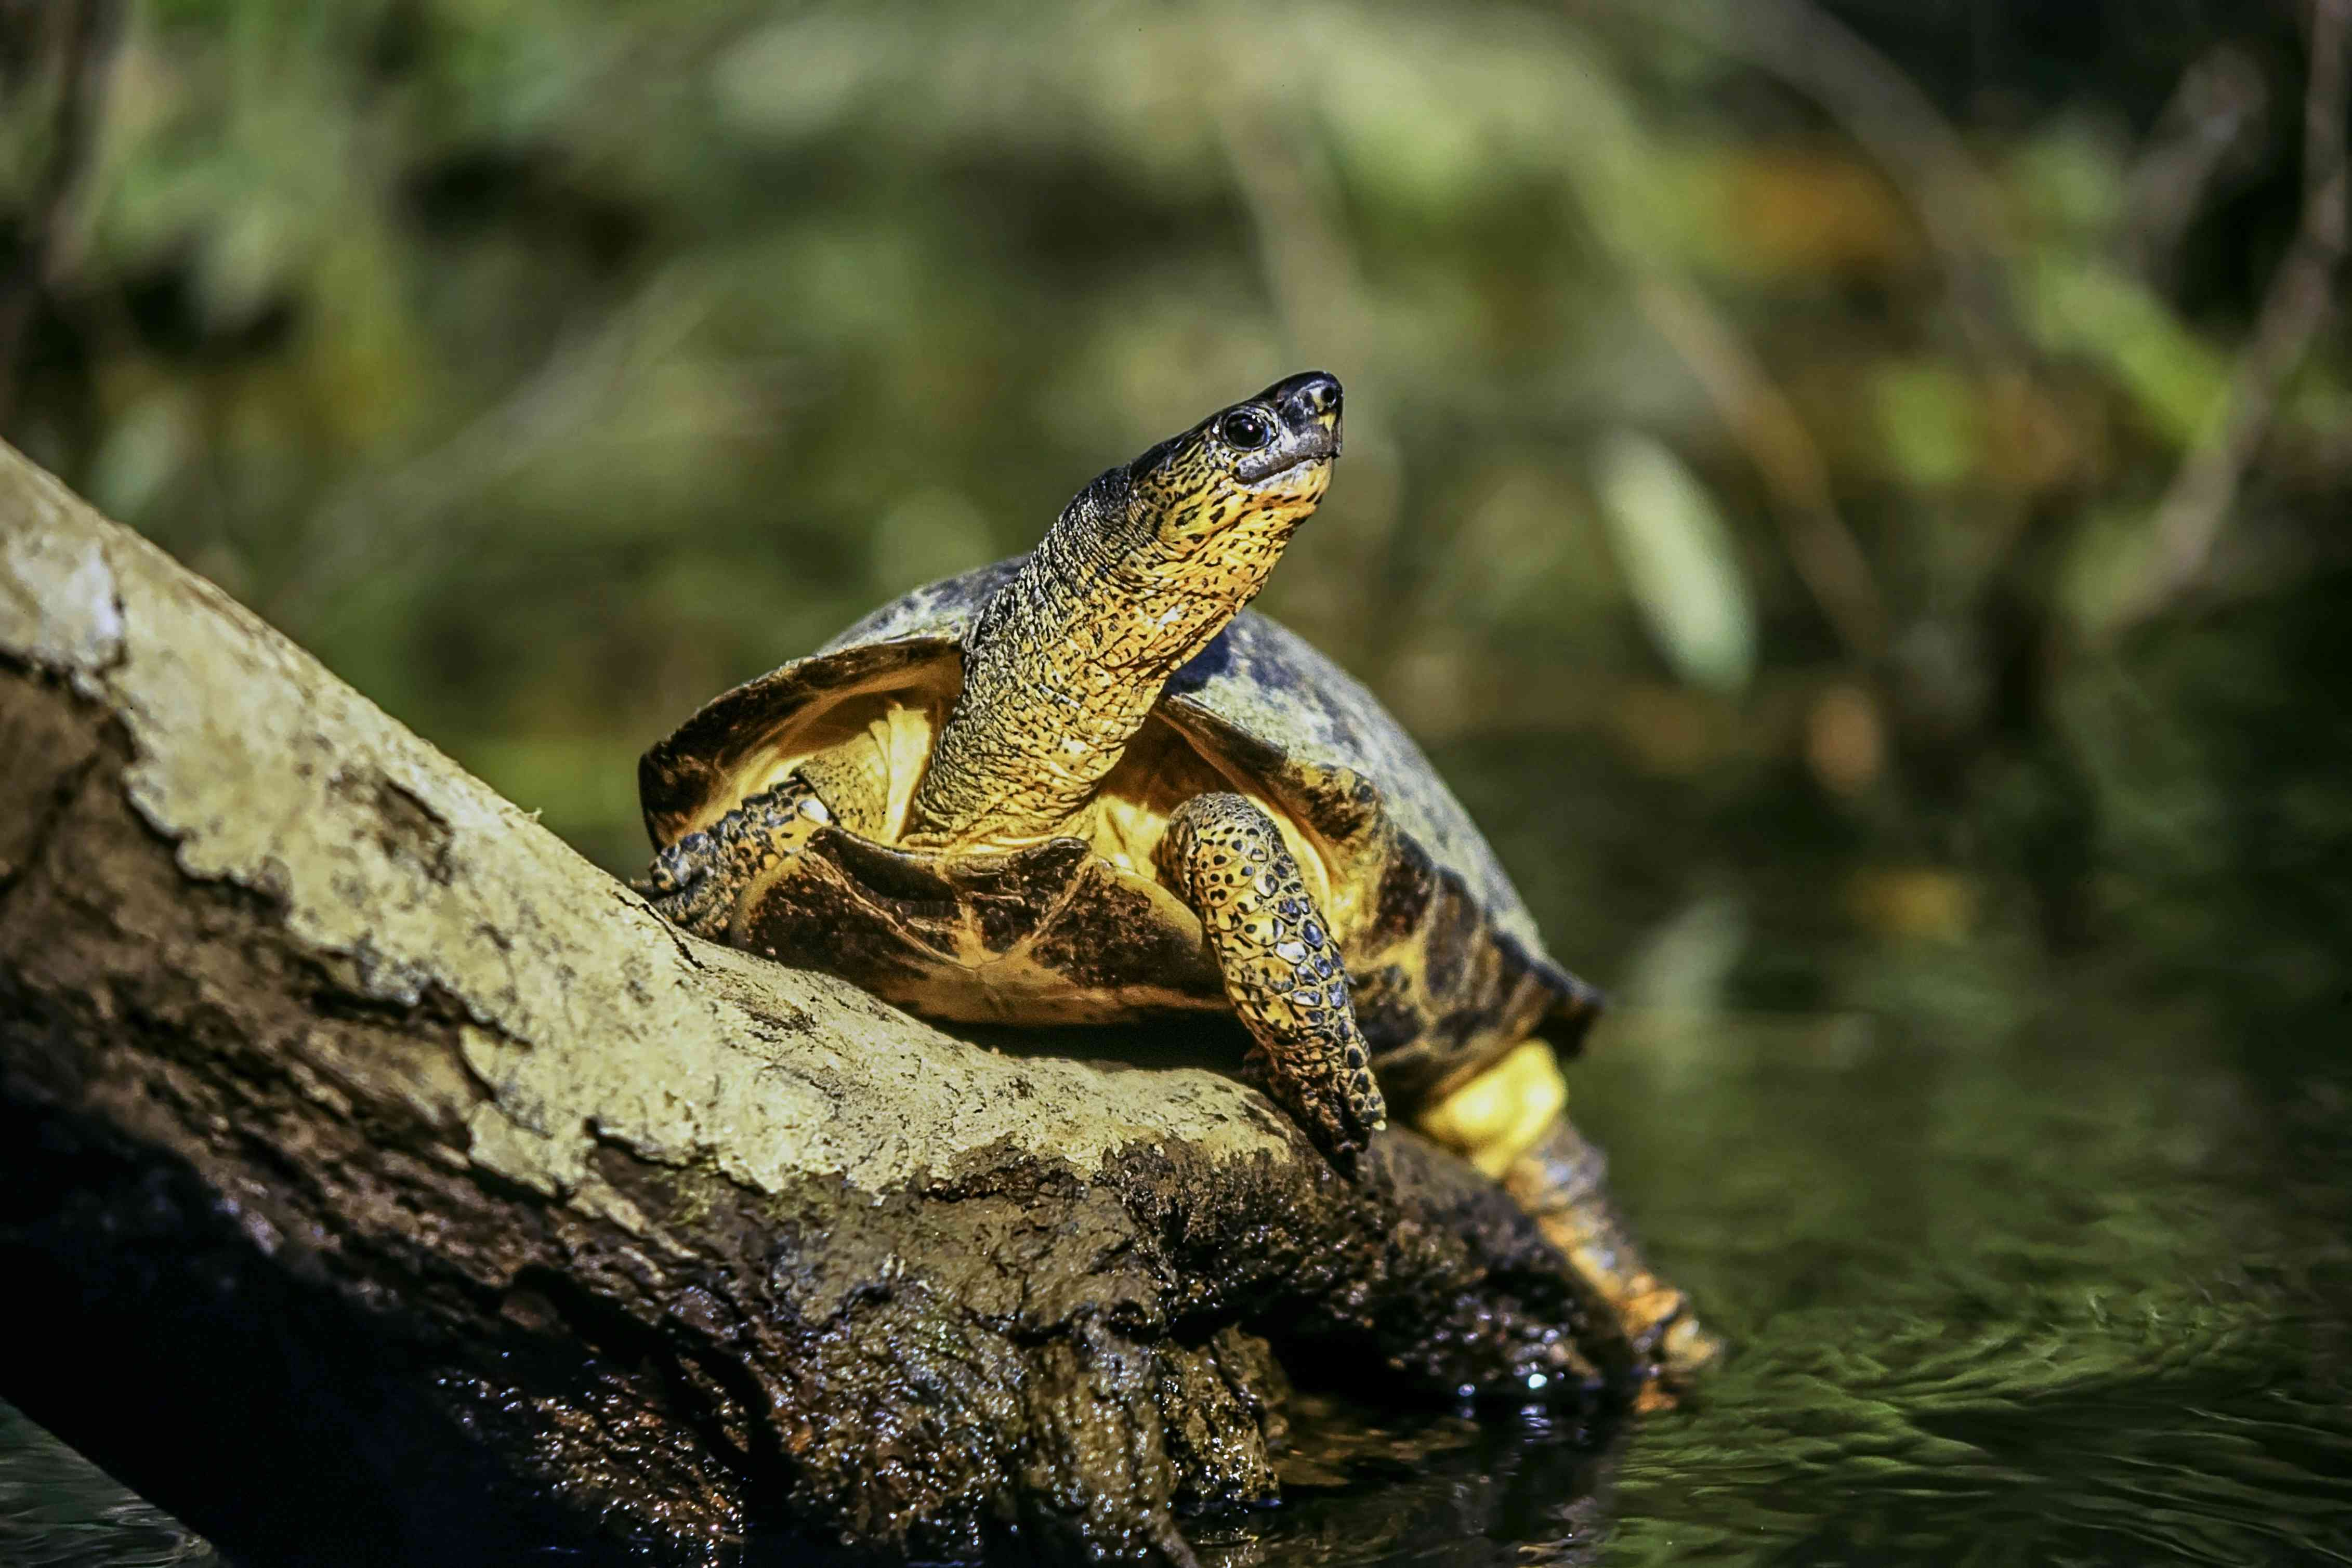 A turtle on the trunk of a tree in a water canal of Tortuguero National Park in Costa Rica. Black river turtle. Rhinoclemmys funerea.